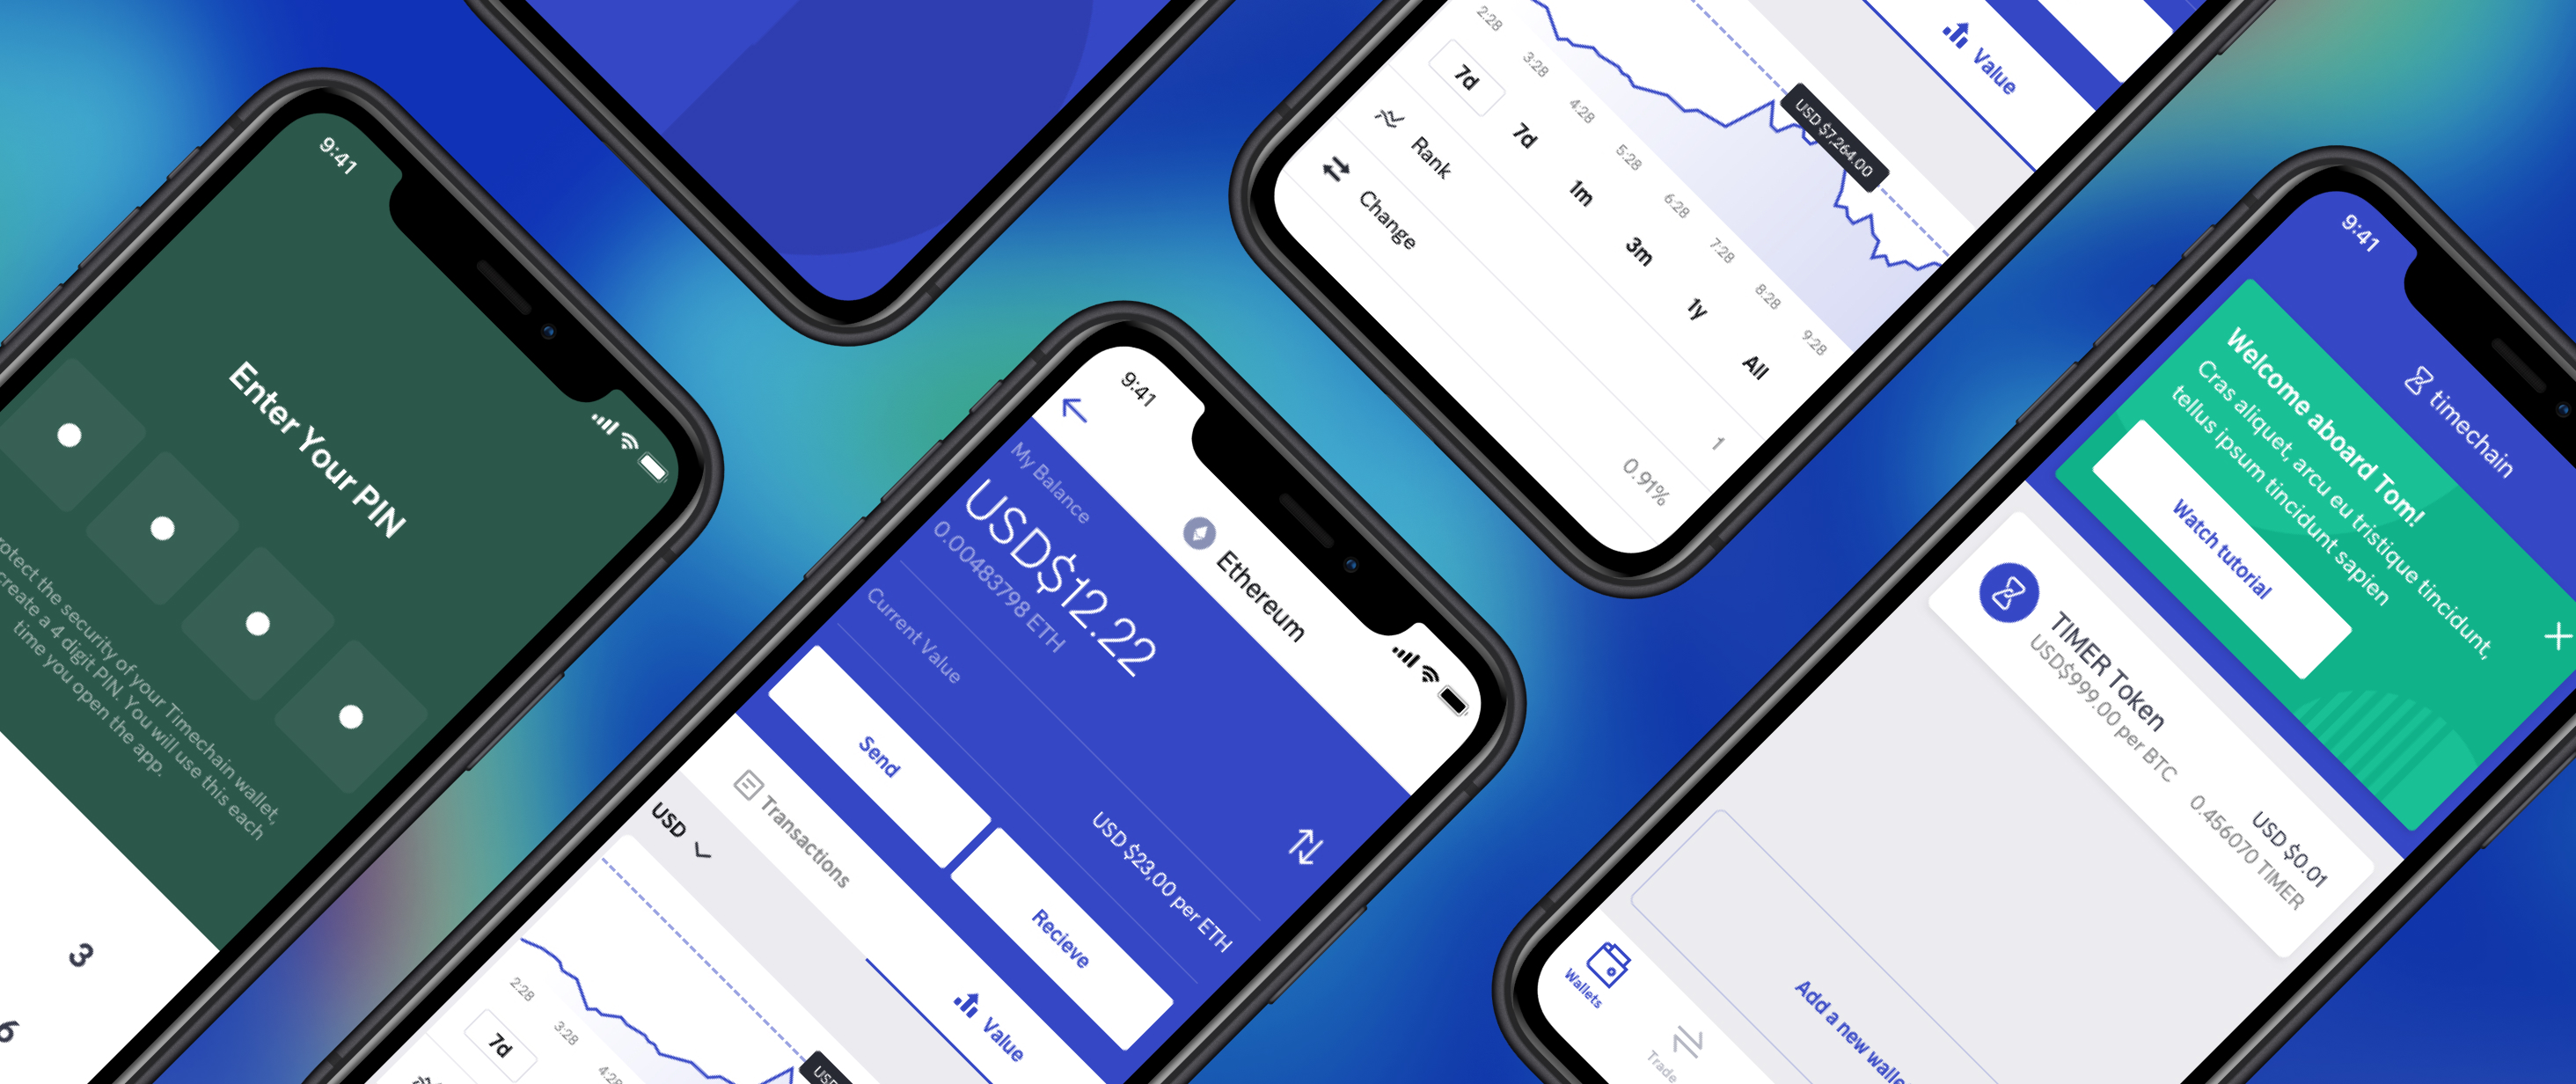 Series of mockups on gradient background